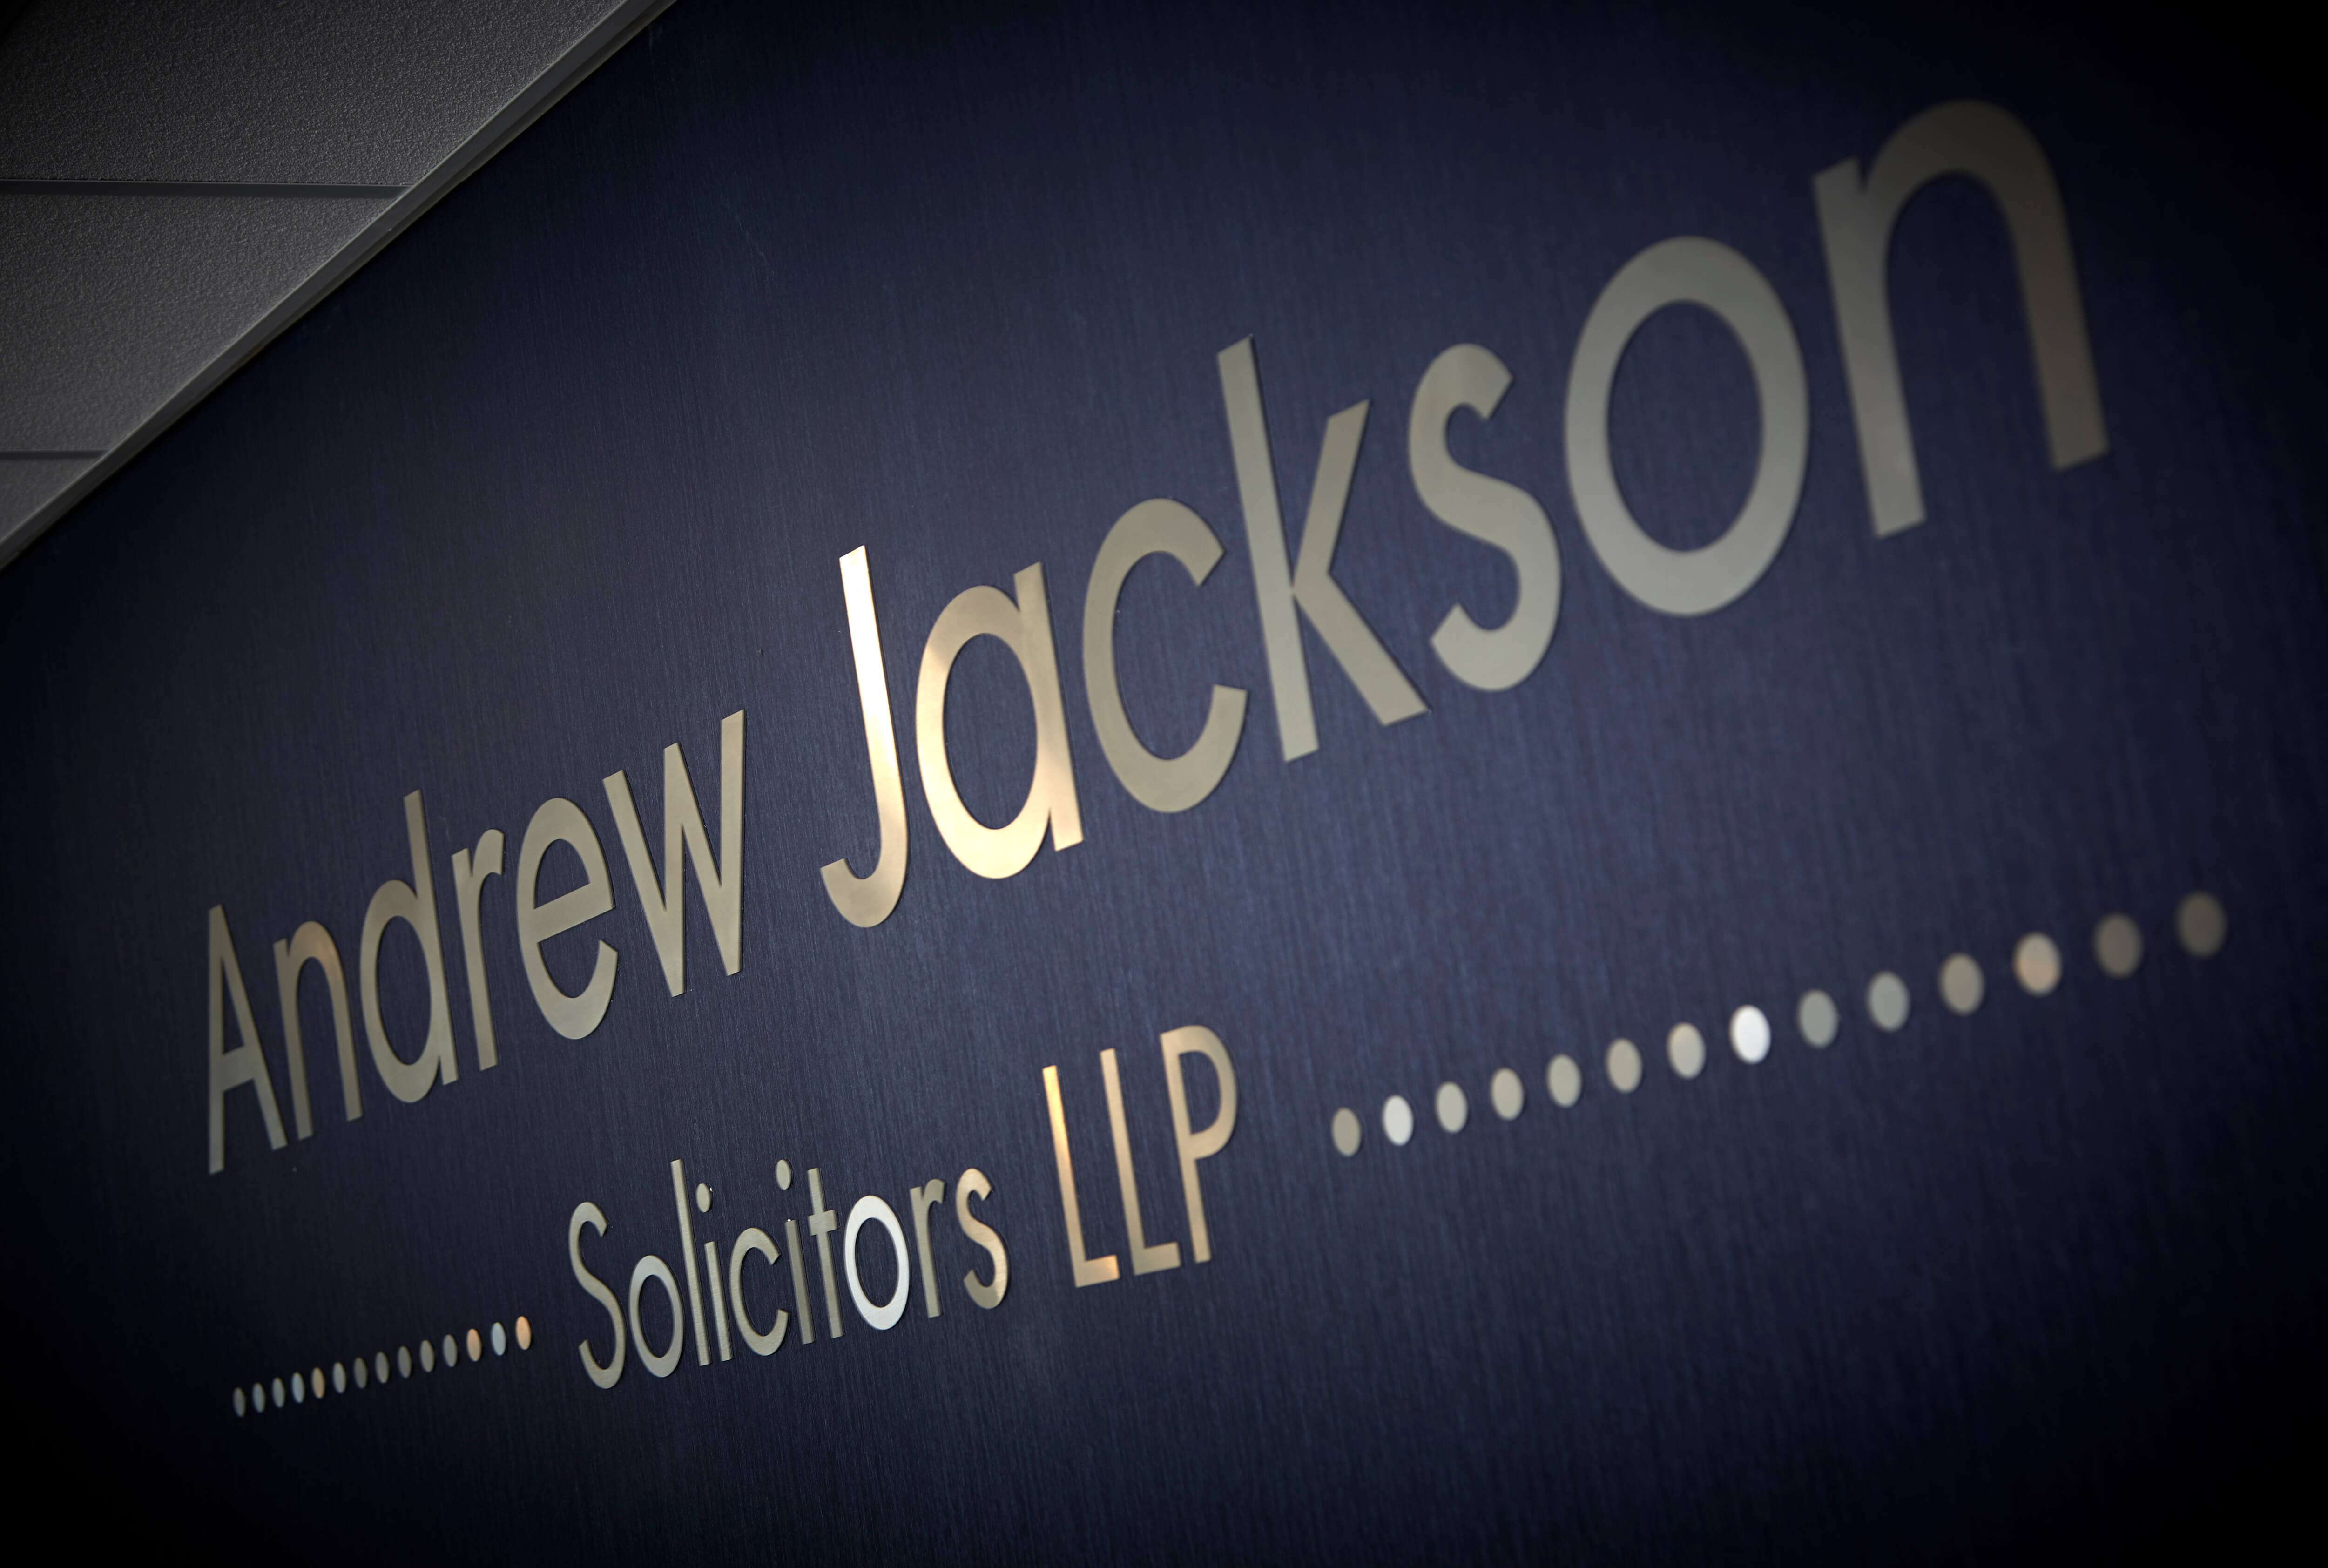 Andrew Jackson kicks off the new financial year with the appointment of two new partners